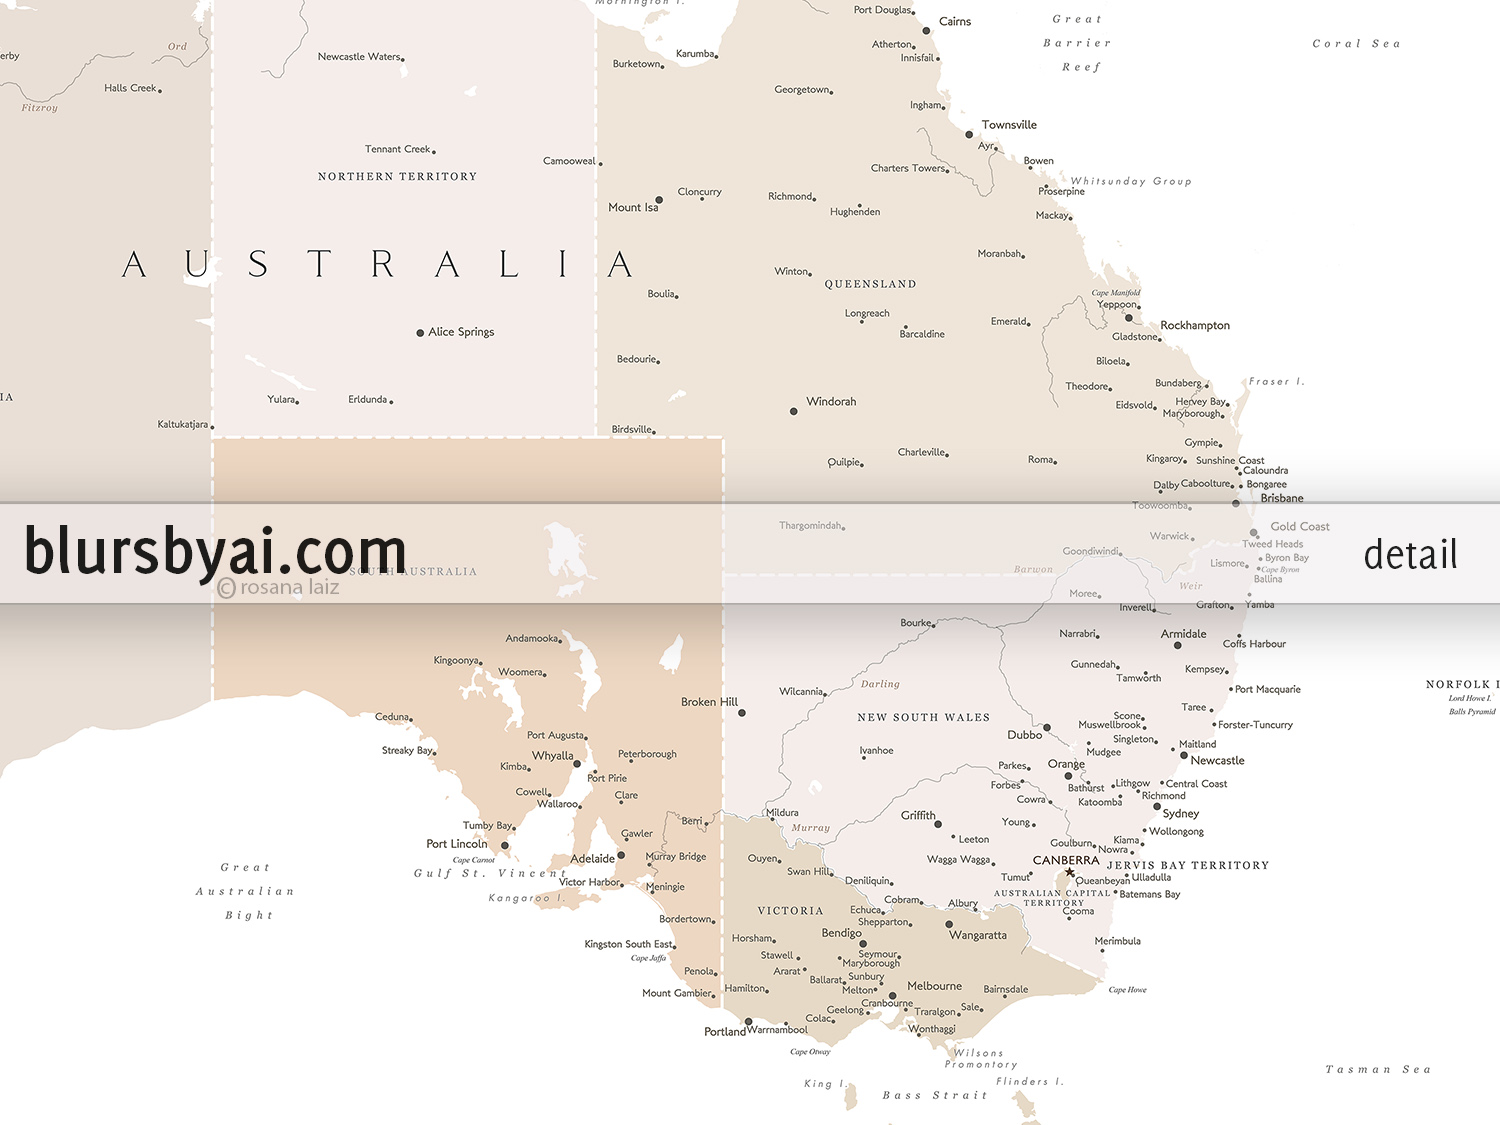 Printable Map Australia.Printable Map Of Australia With Cities In Cream And Light Brown By